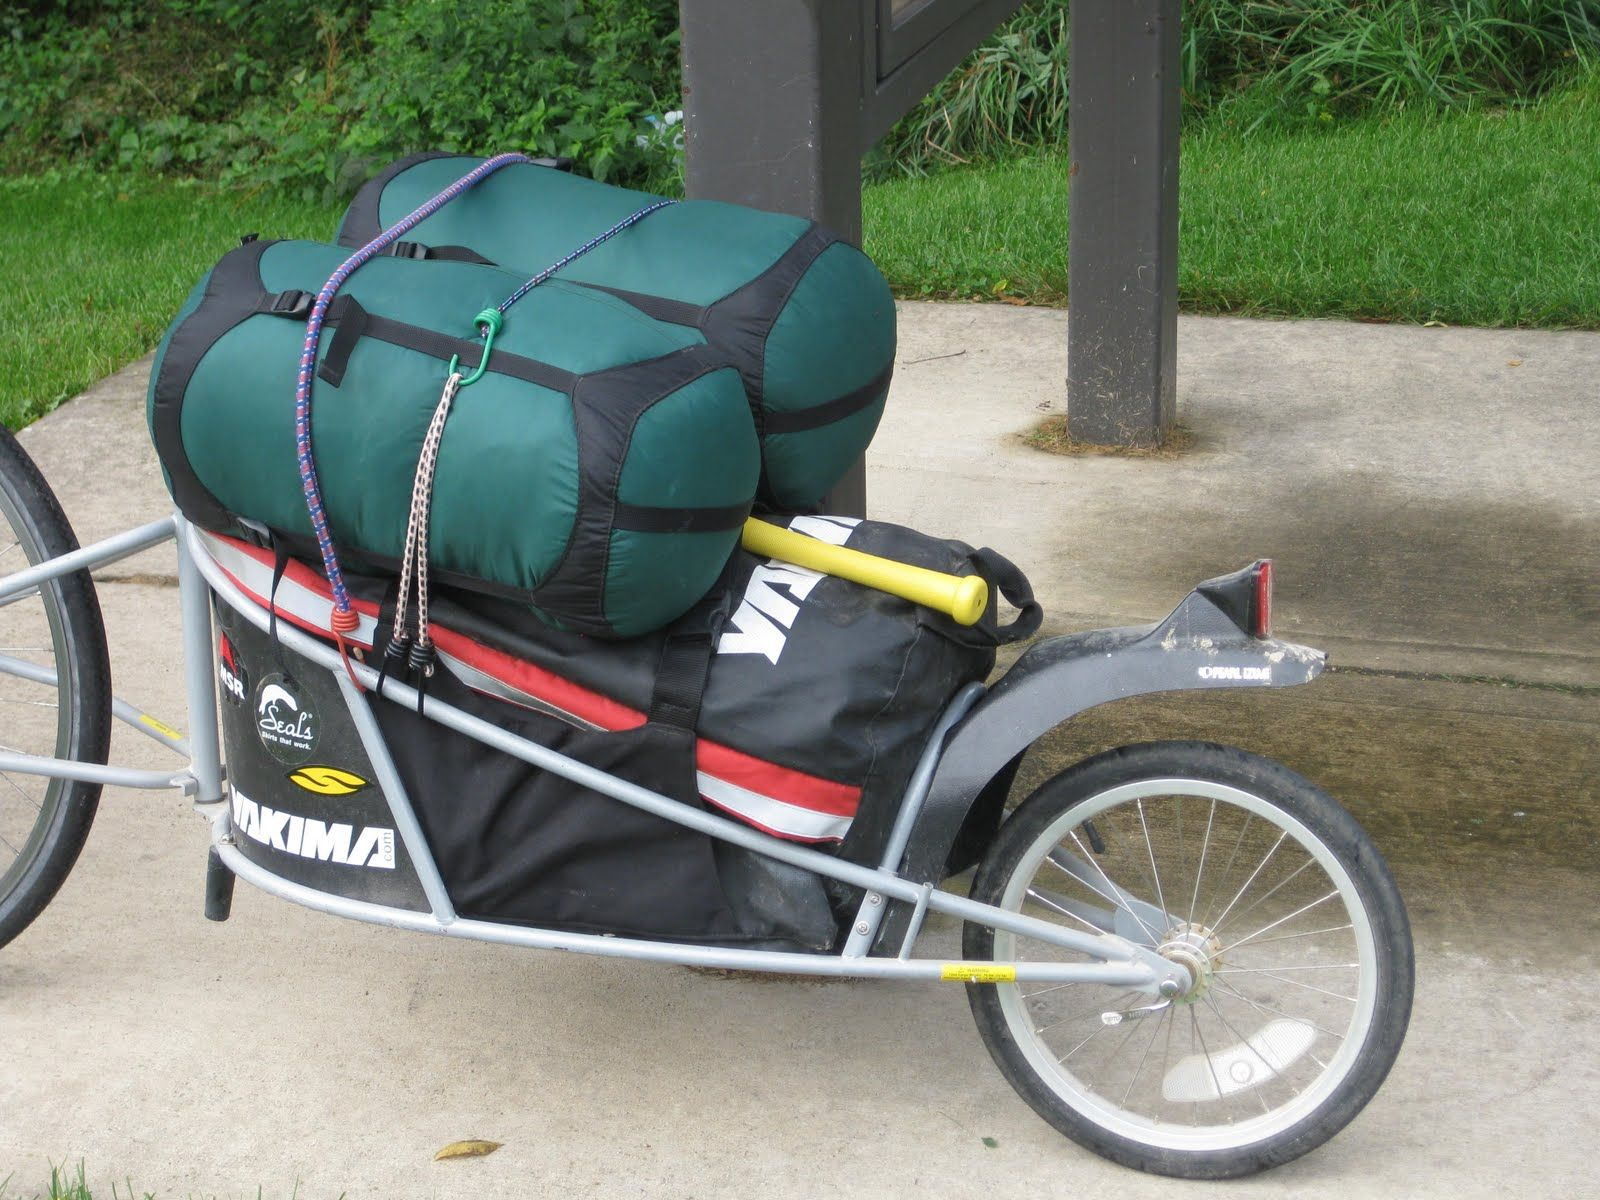 Bike Camper Trailer You Can Pull The Worlds Smallest Pop Up Camper With Your Bike